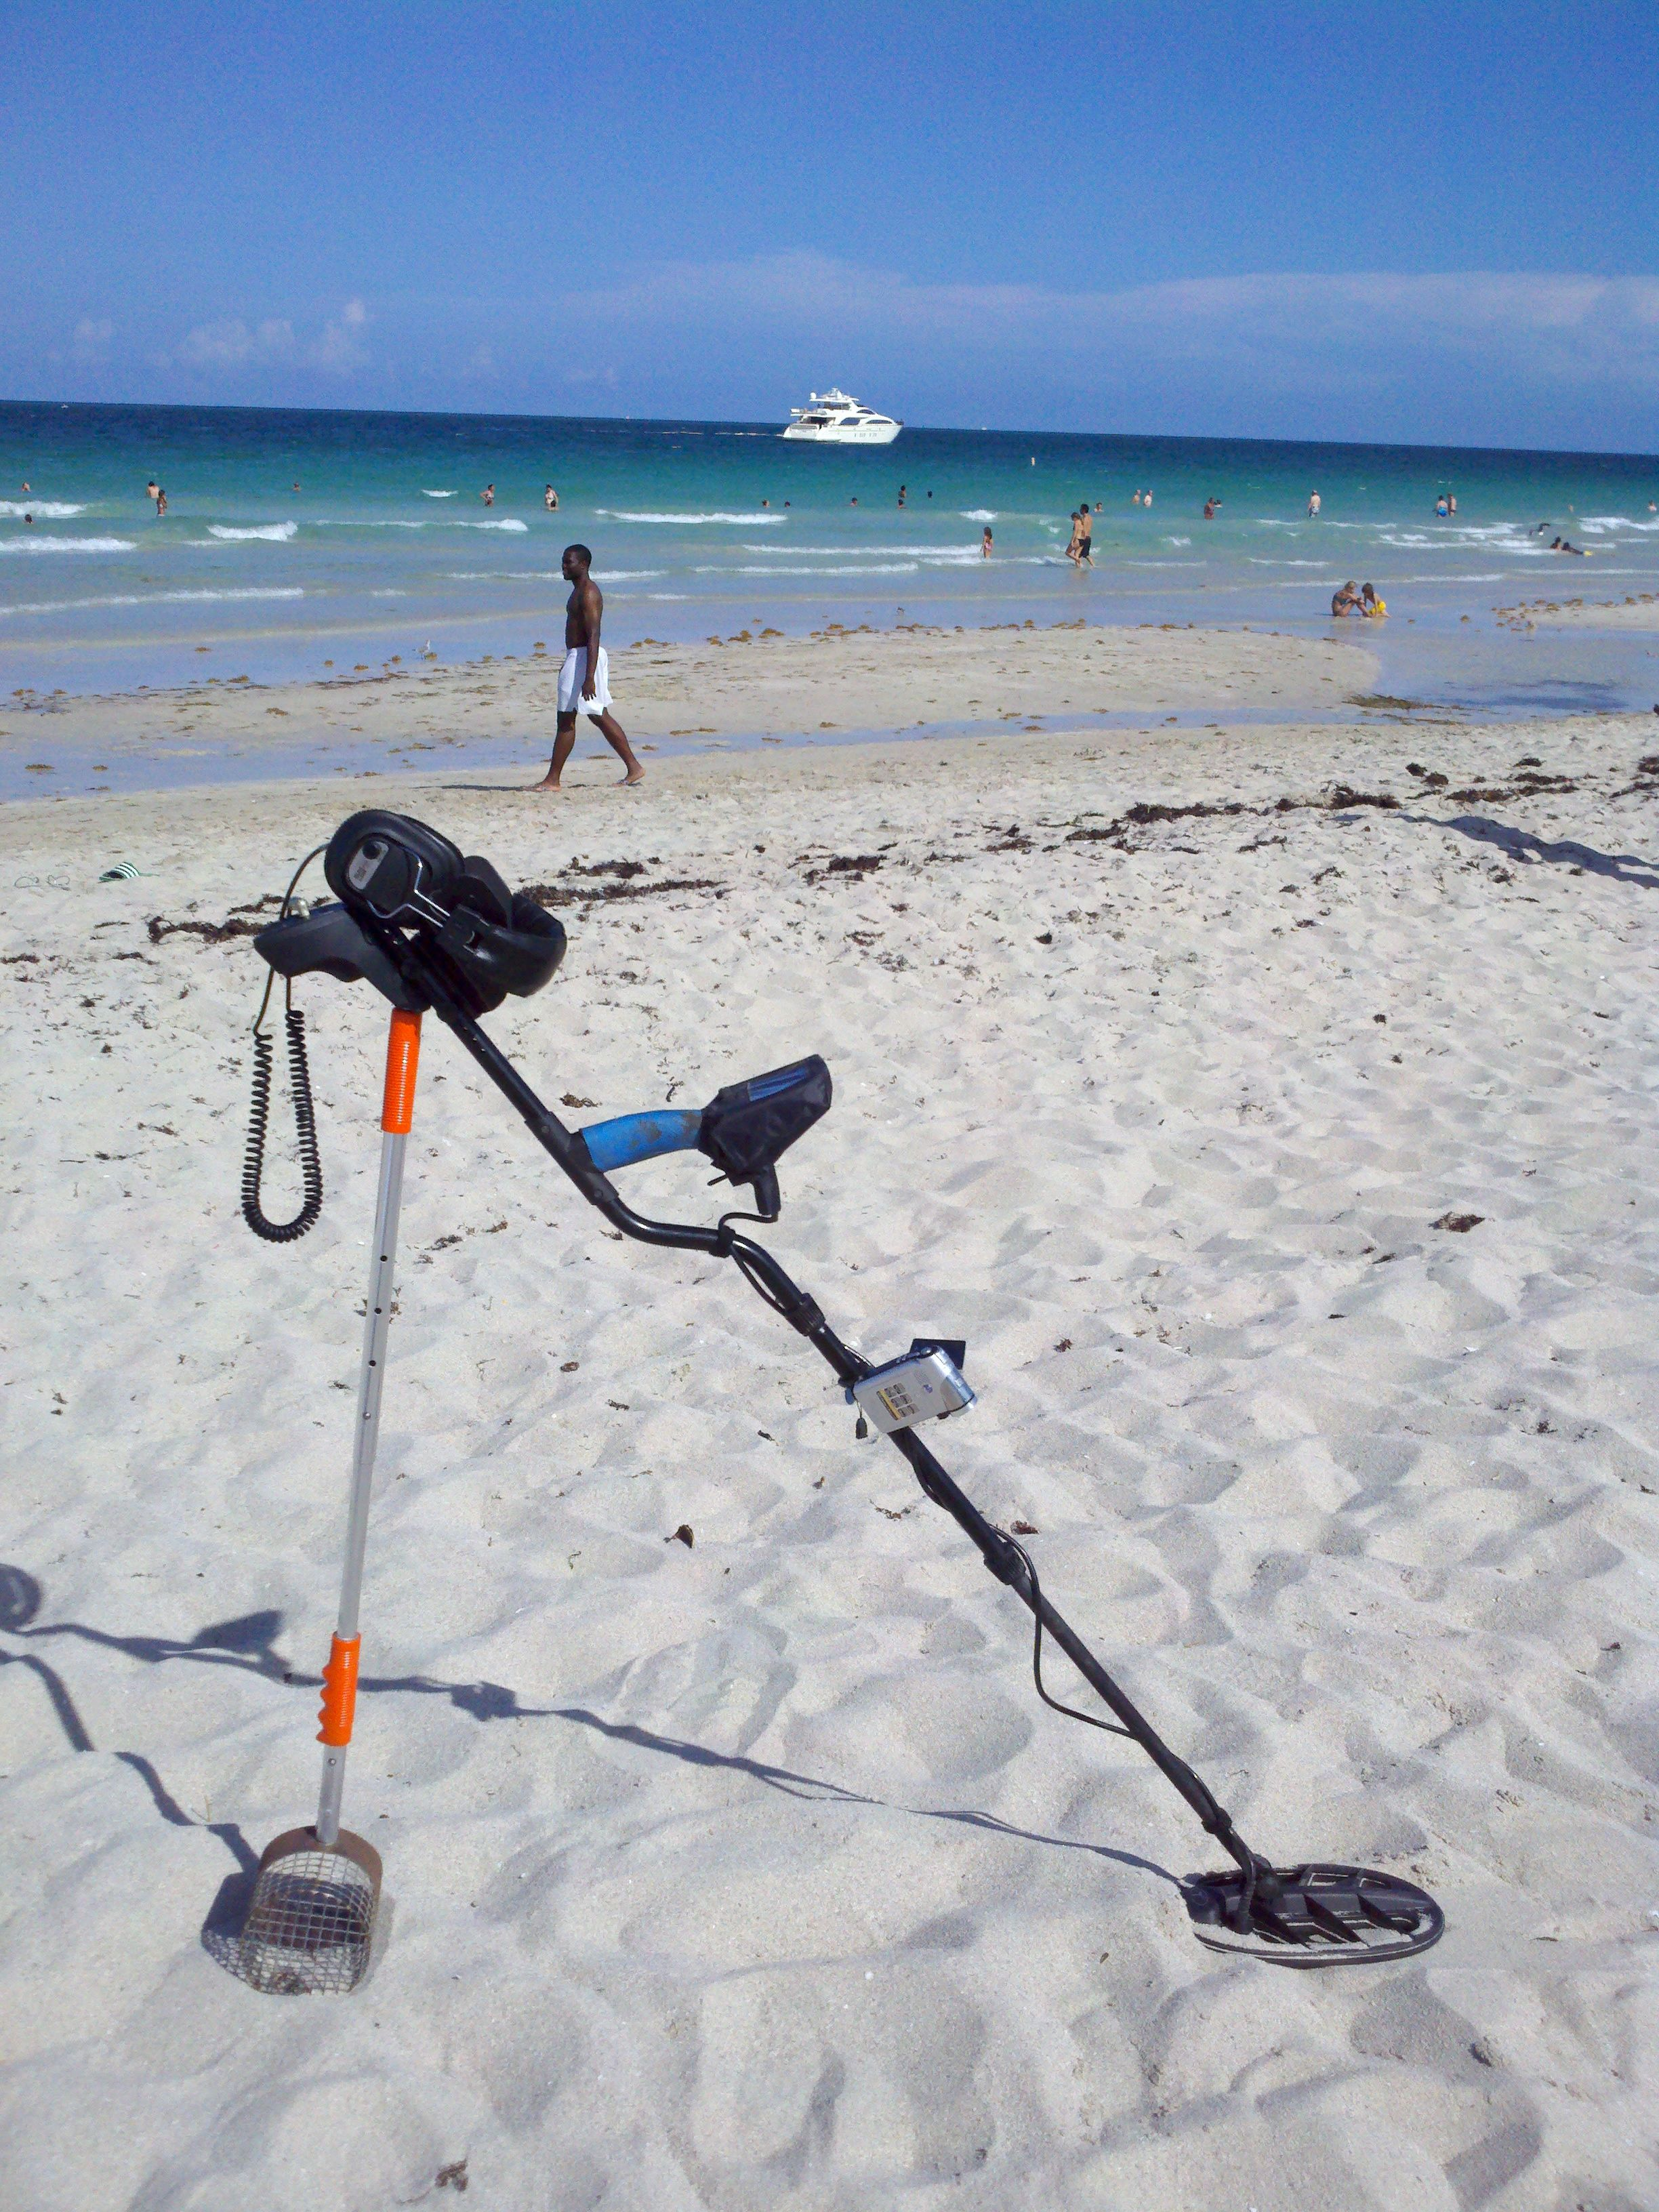 Found south beach florida places to travel south